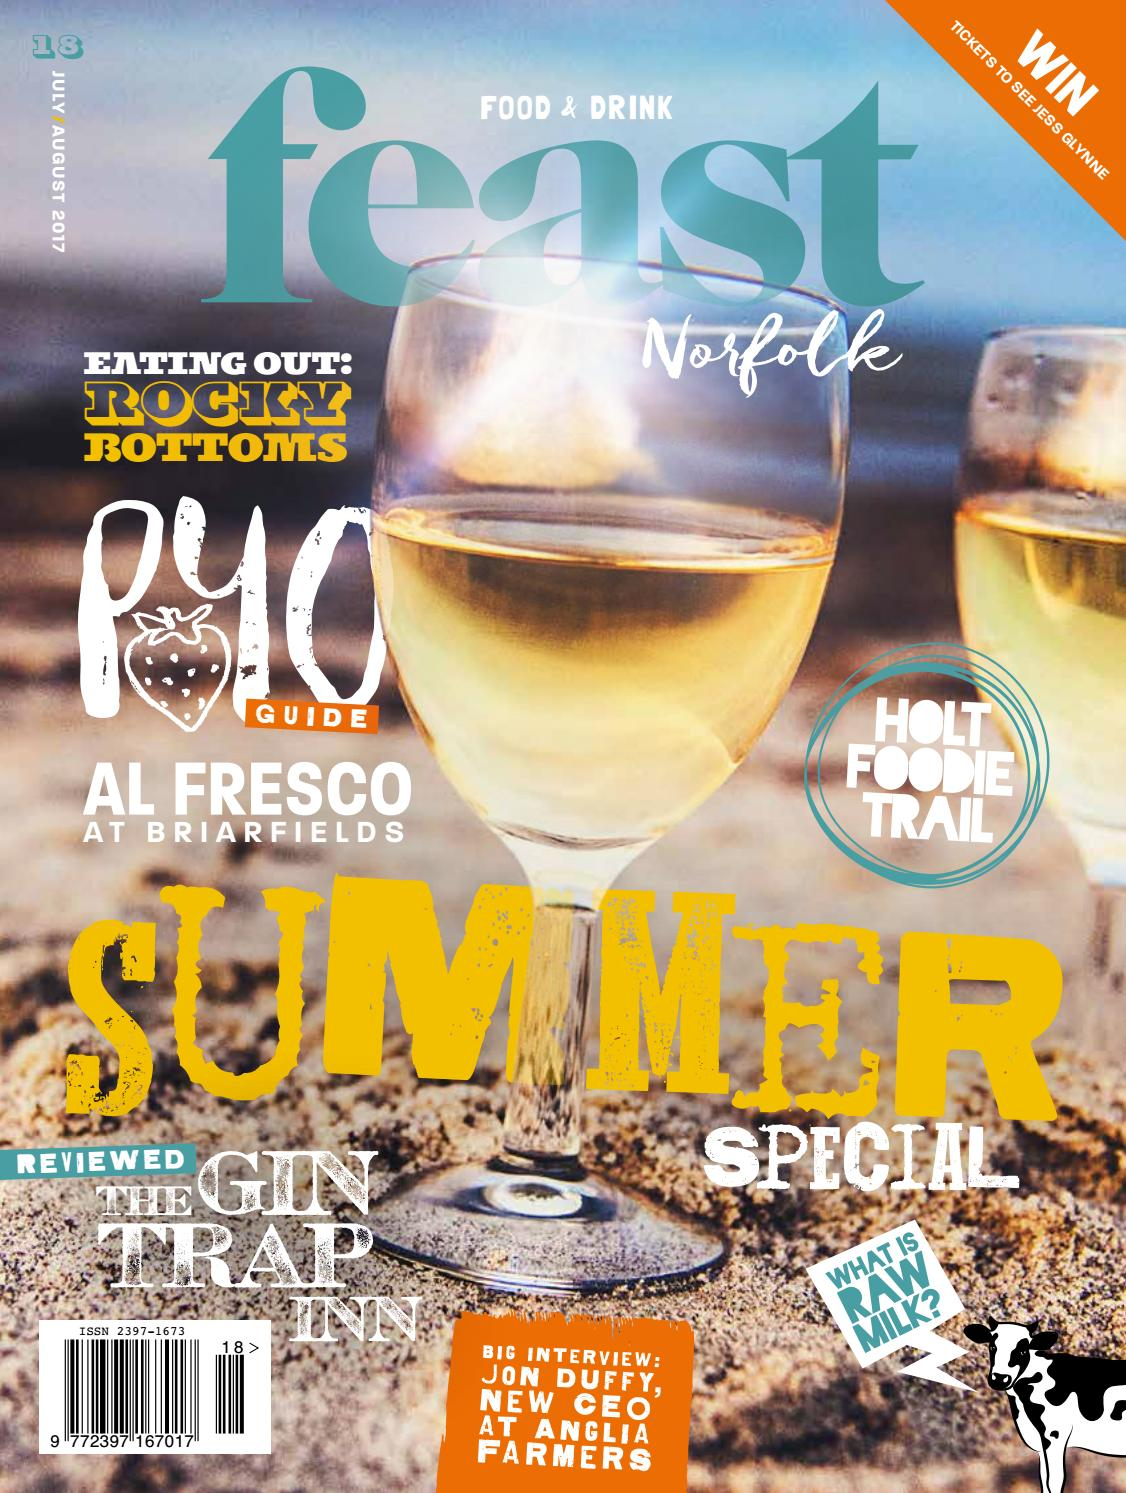 Feast Norfolk Magazine July/August 17 Issue 18 by Feast